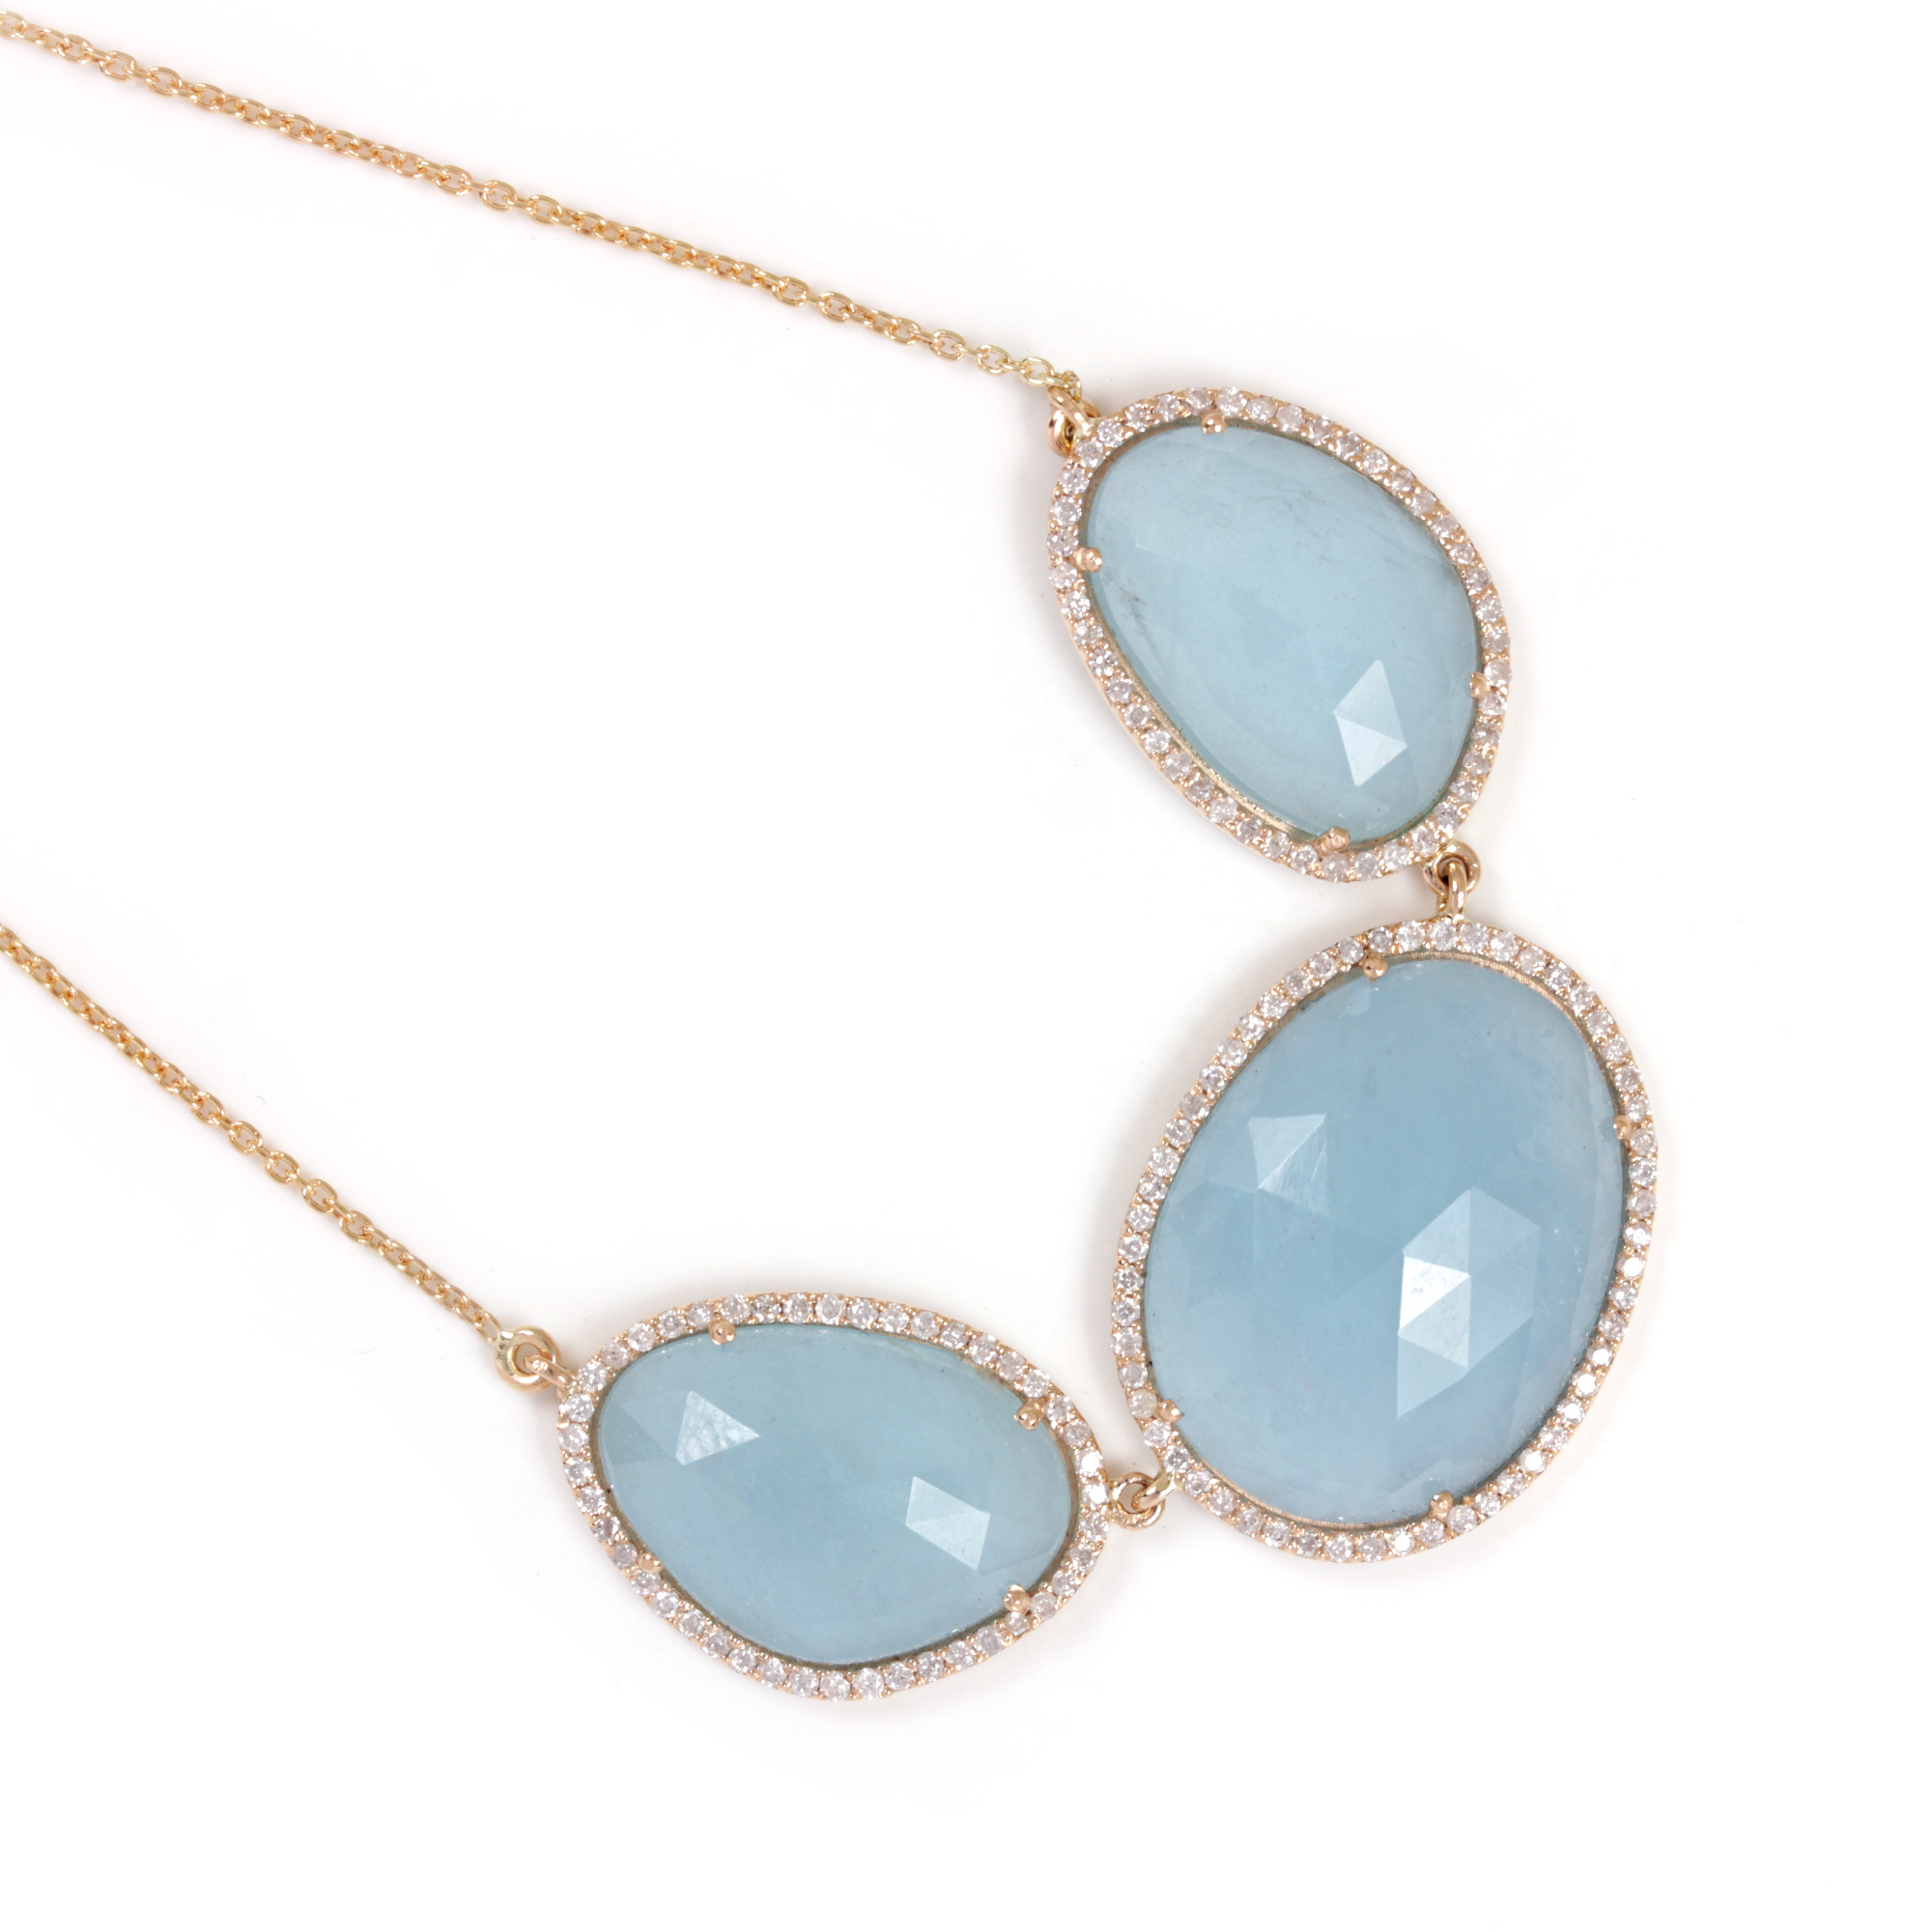 Natural Aquamarine Pave Diamond Pendant Necklace 14K Solid Gold Chain Jewelry